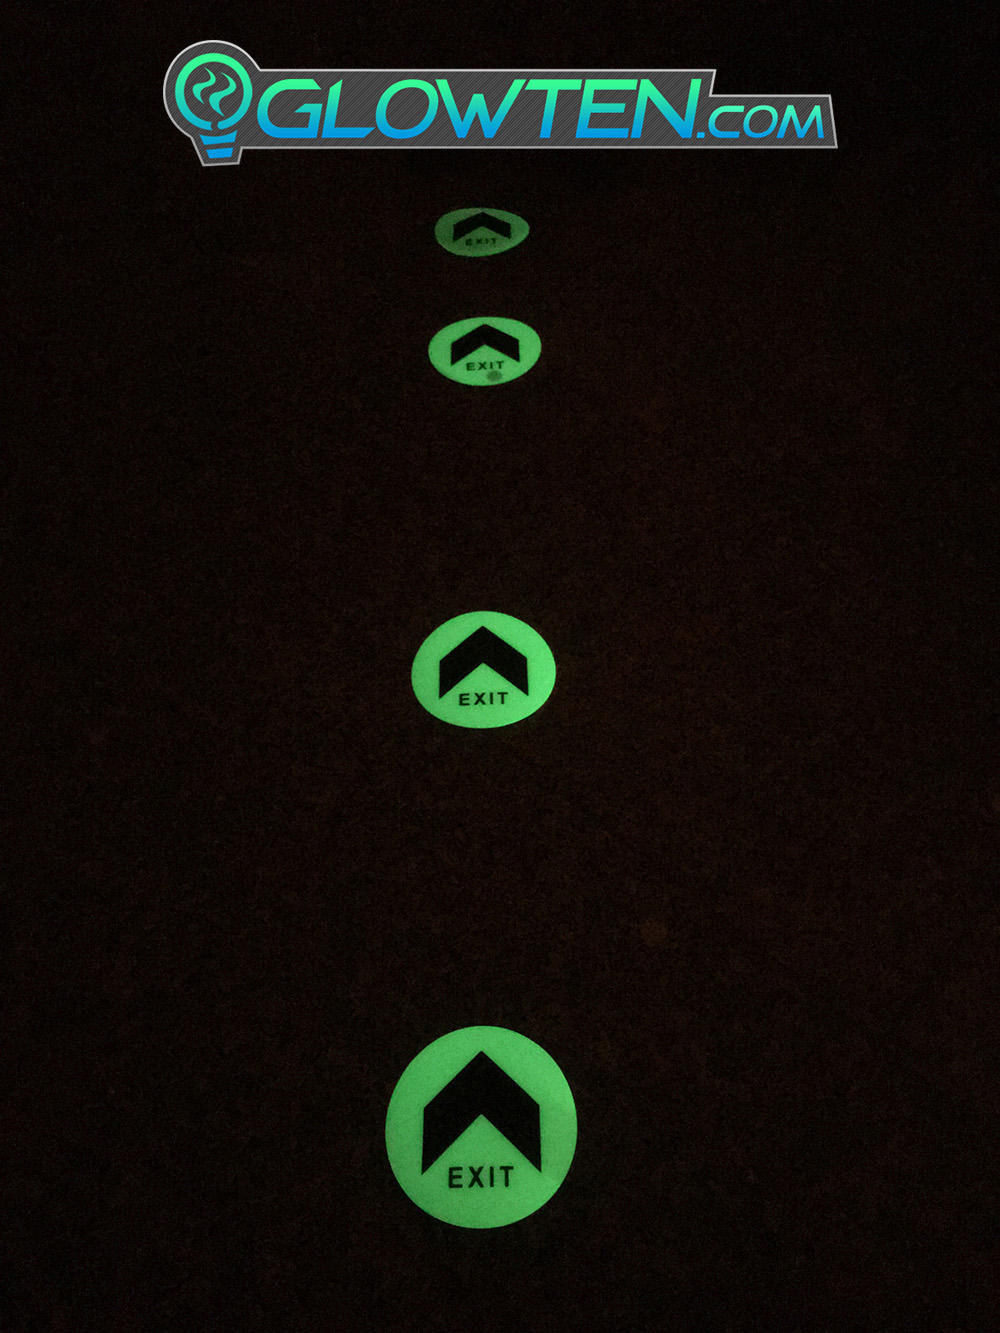 GLOWTEN.com - Floor Decal Marker Sign Glow In The Dark Flourescent Green Large Arrow Fire Exit Sign Emergency Glow In The Dark Eco Friendly Photoluminescent Pigment Pvc Plastic With Adhesive picture photo cap preview pic image search 3